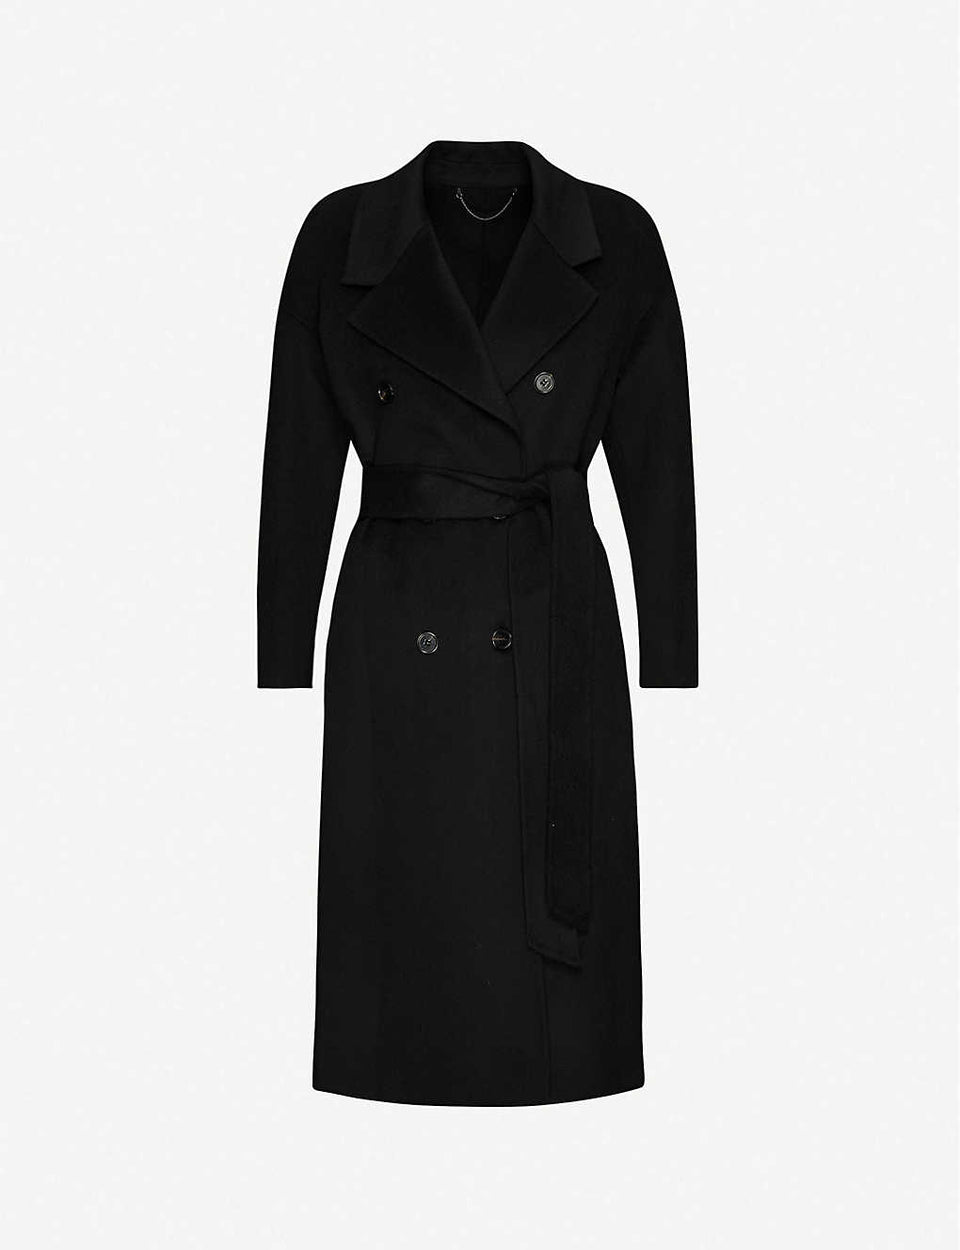 Maddison tie-belt wool-blend coat, Black